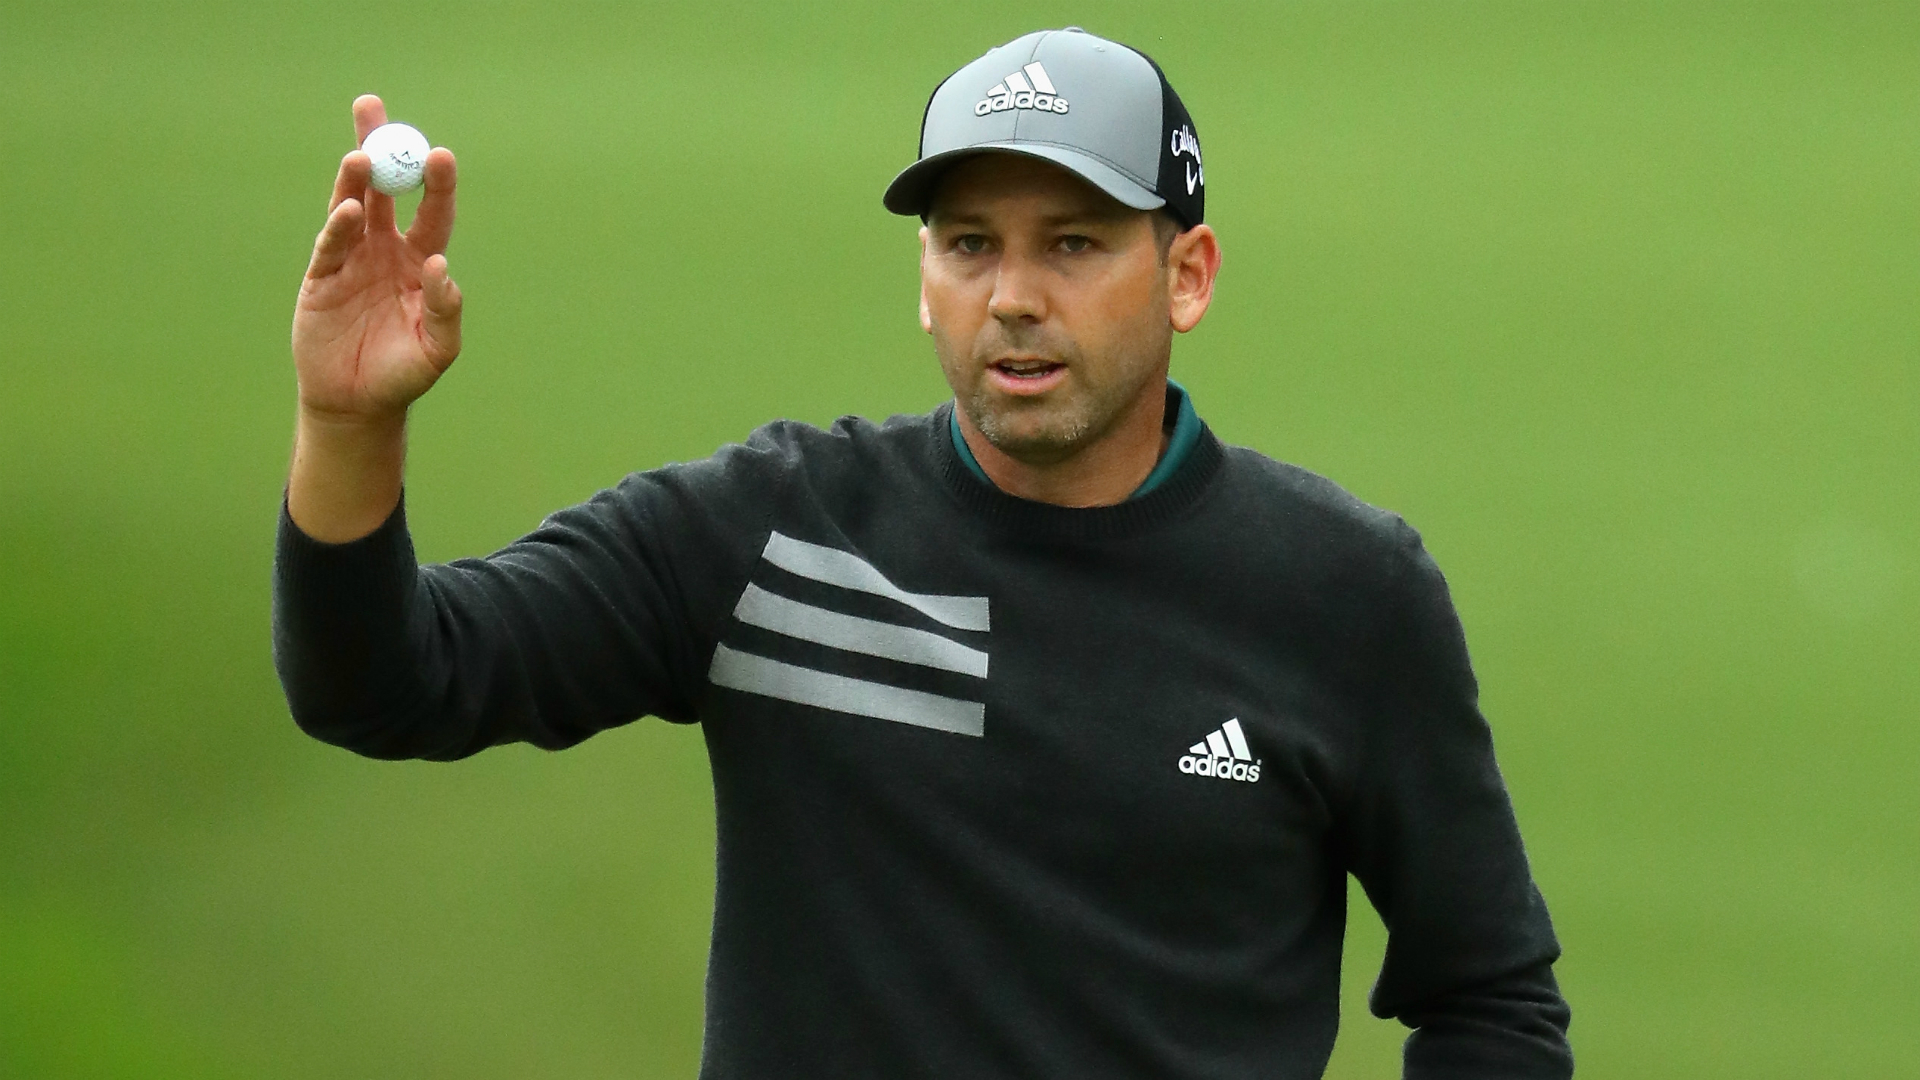 Garcia dazzles to hit the front at shortened Valderrama Masters